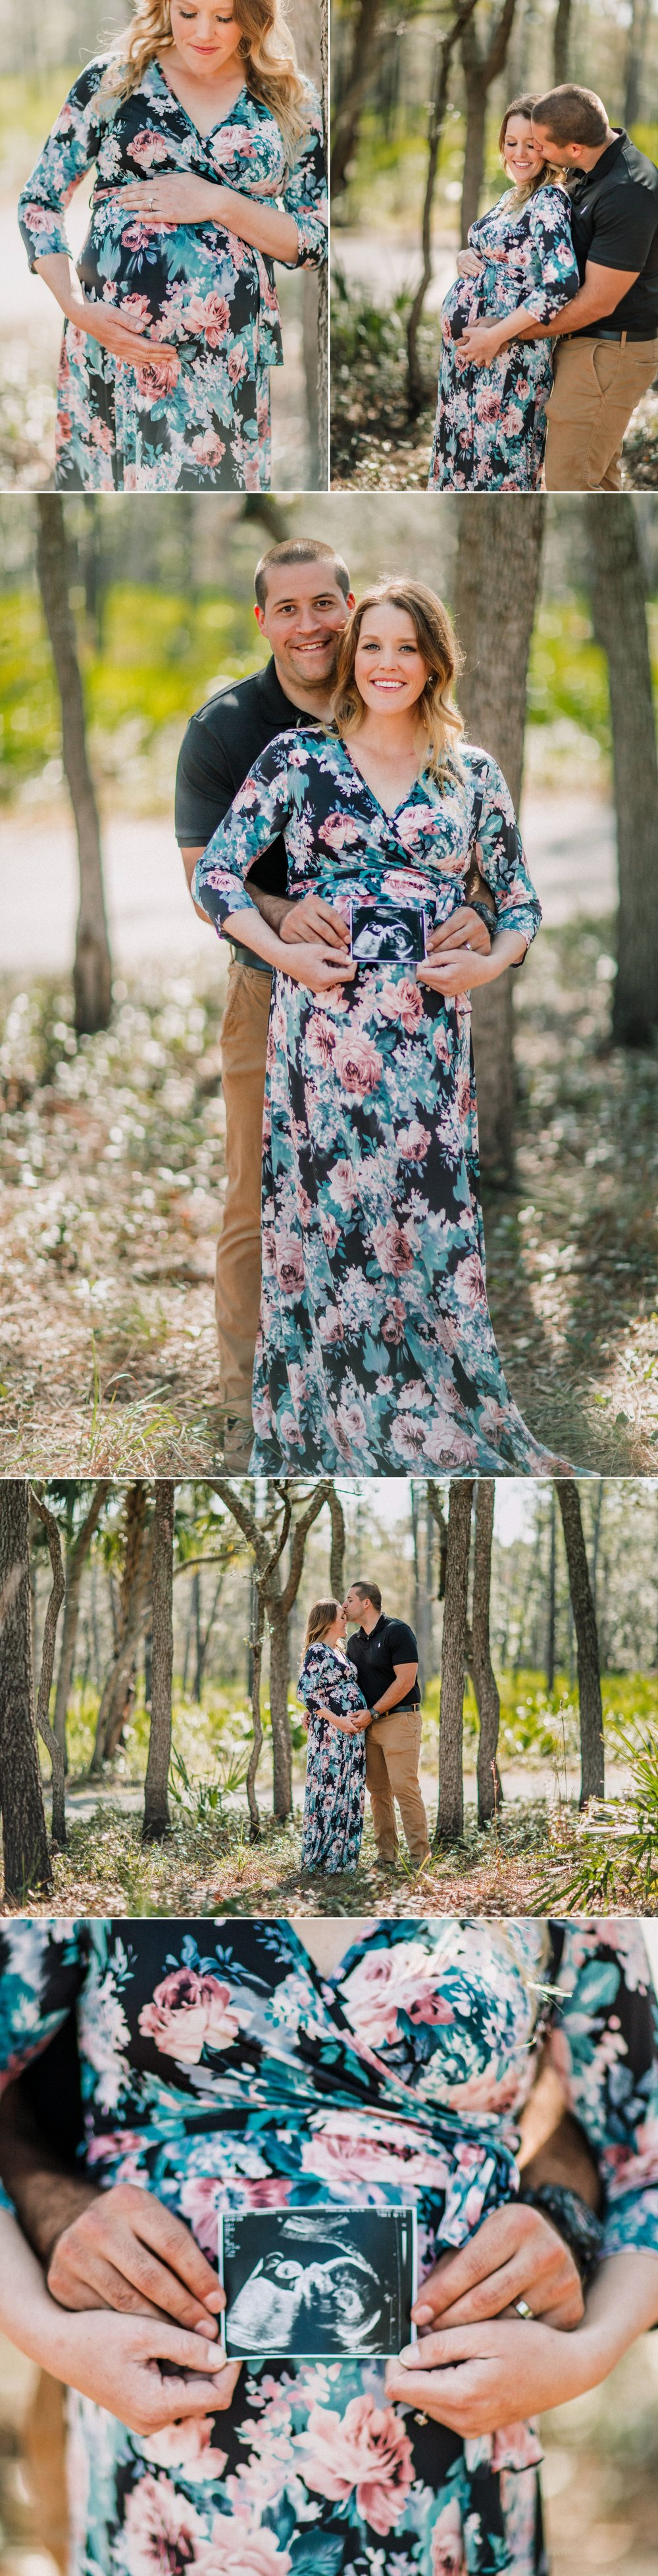 Blue_Springs_Wekiwa_State_Park_Winter_Park_Boho_Chic_Lifestyle_Maternity_Photos_by_ShainaDeCiryan.com2.jpg